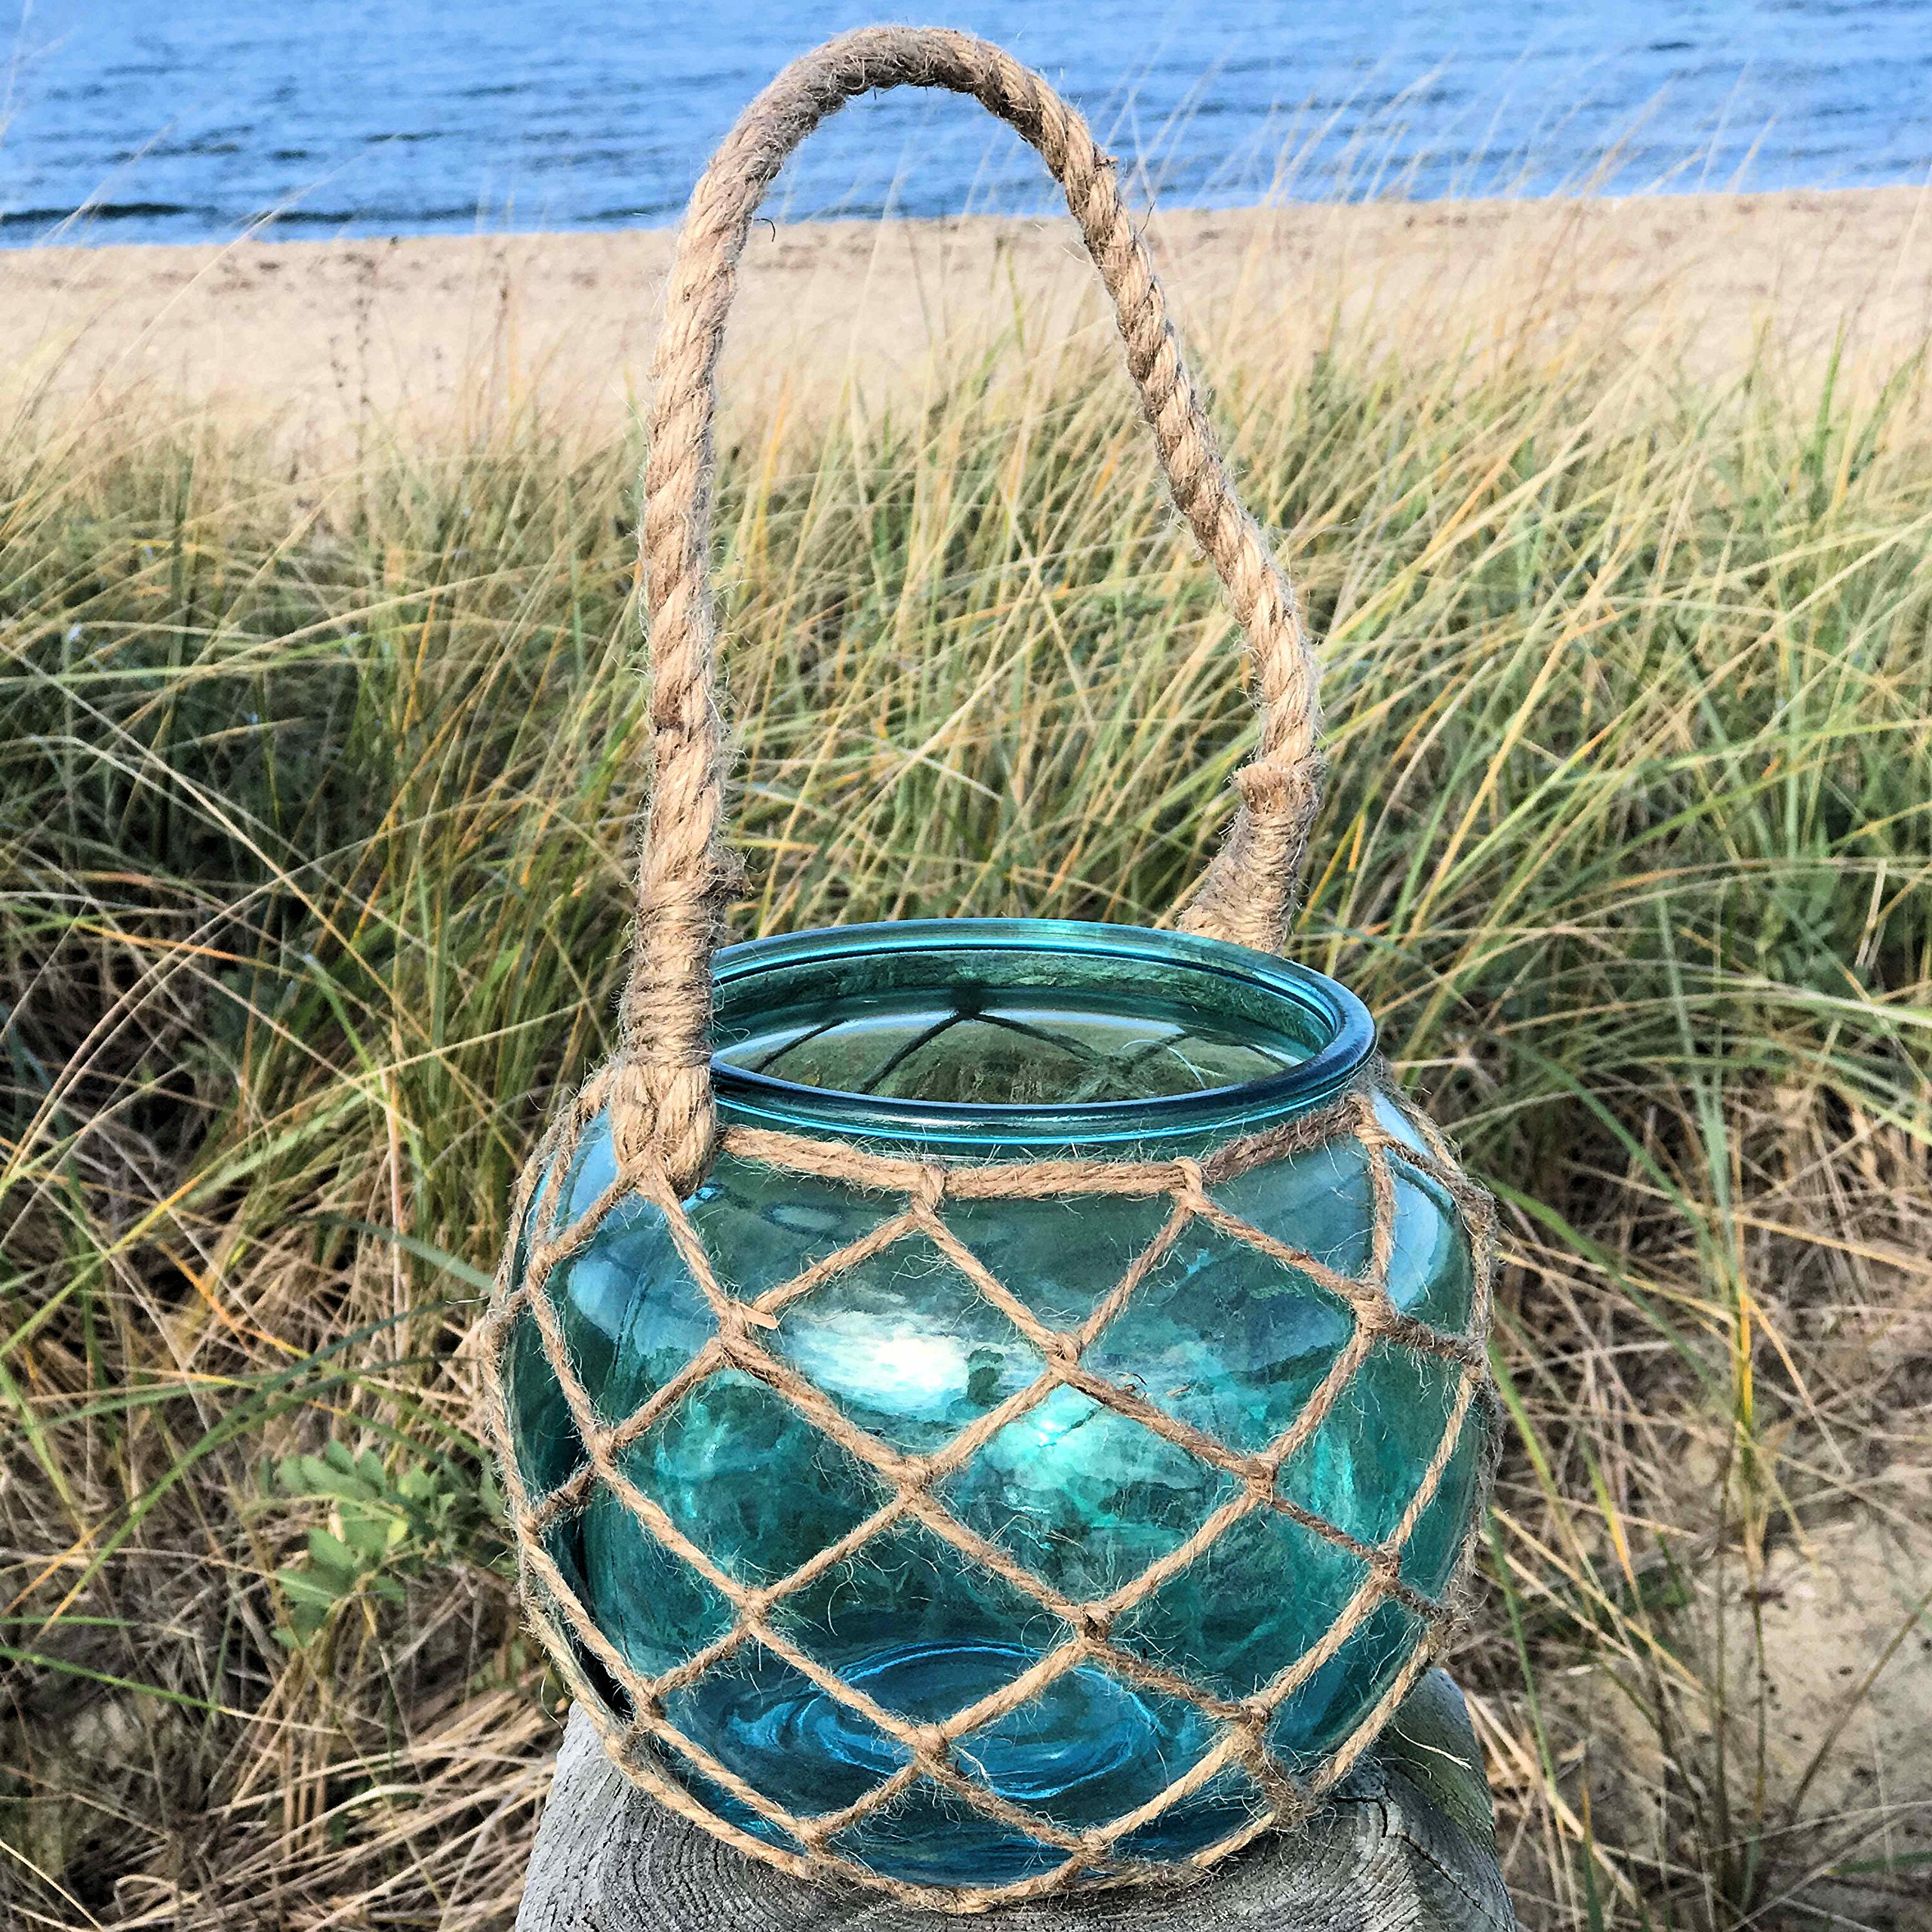 Whole House Worlds The Mariners Lobster Pot Netted Hurricane Candle Lantern, Globe Shape, Pale Aqua Marine, Jute, Rope Handles, Glass, 6 Inches Diameter, 5 Inches Tall, By by Whole House Worlds